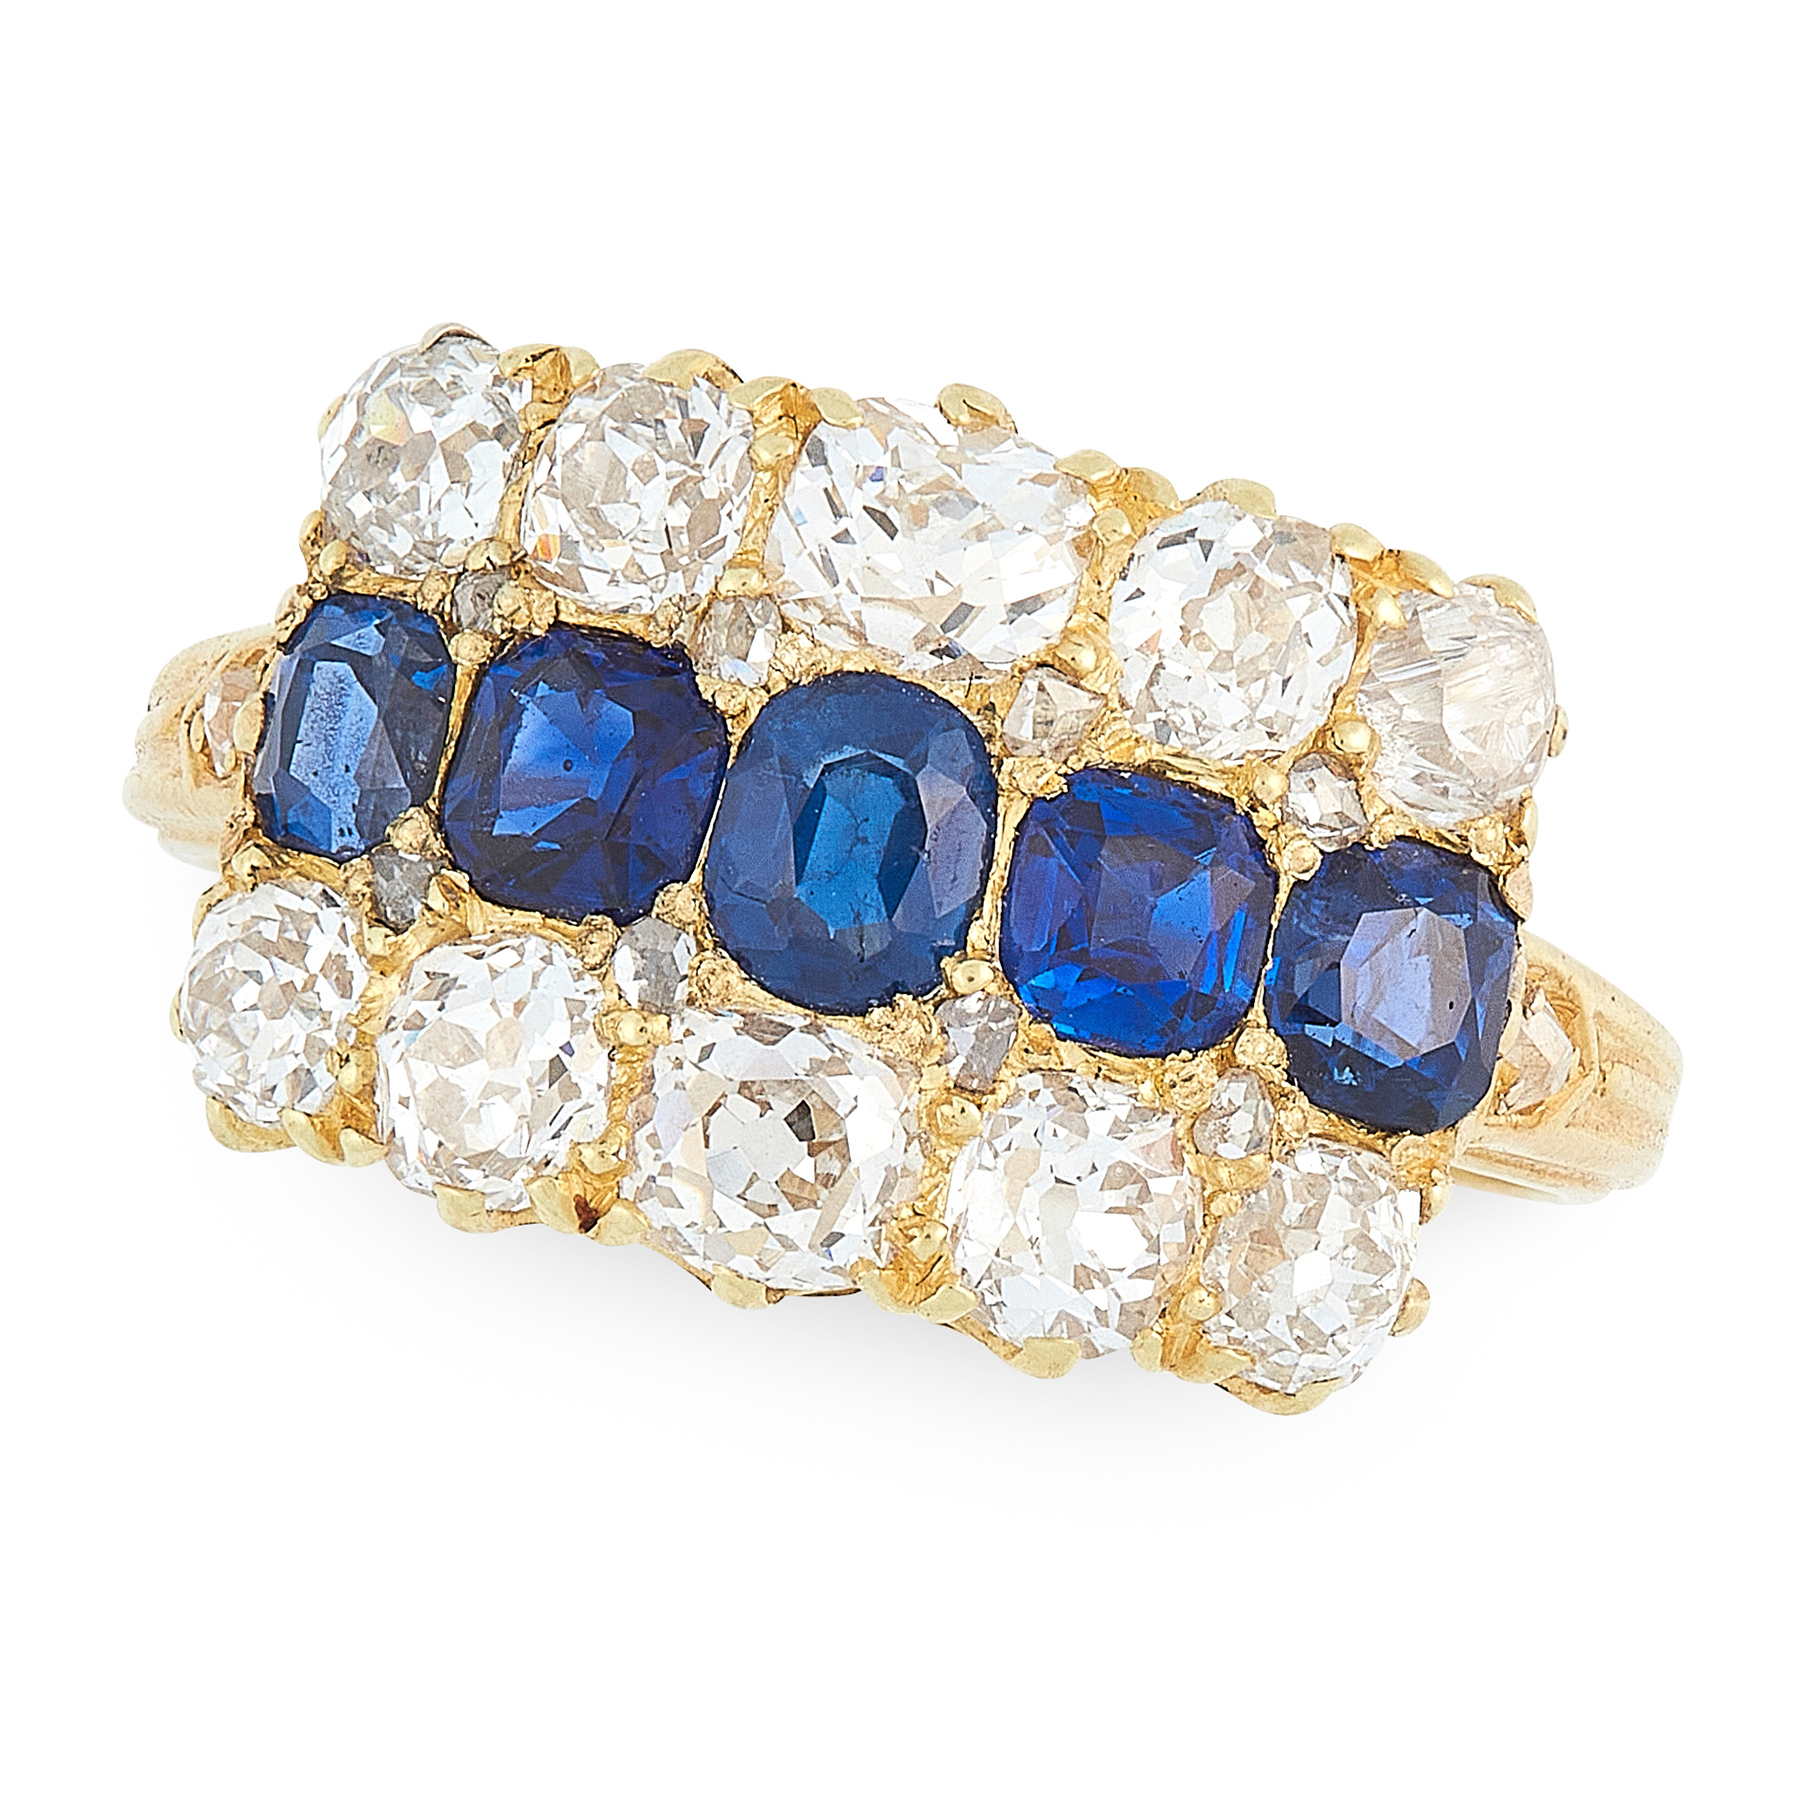 AN ANTIQUE SAPPHIRE AND DIAMOND RING in 18ct yellow gold, set with a row of five graduated cushion